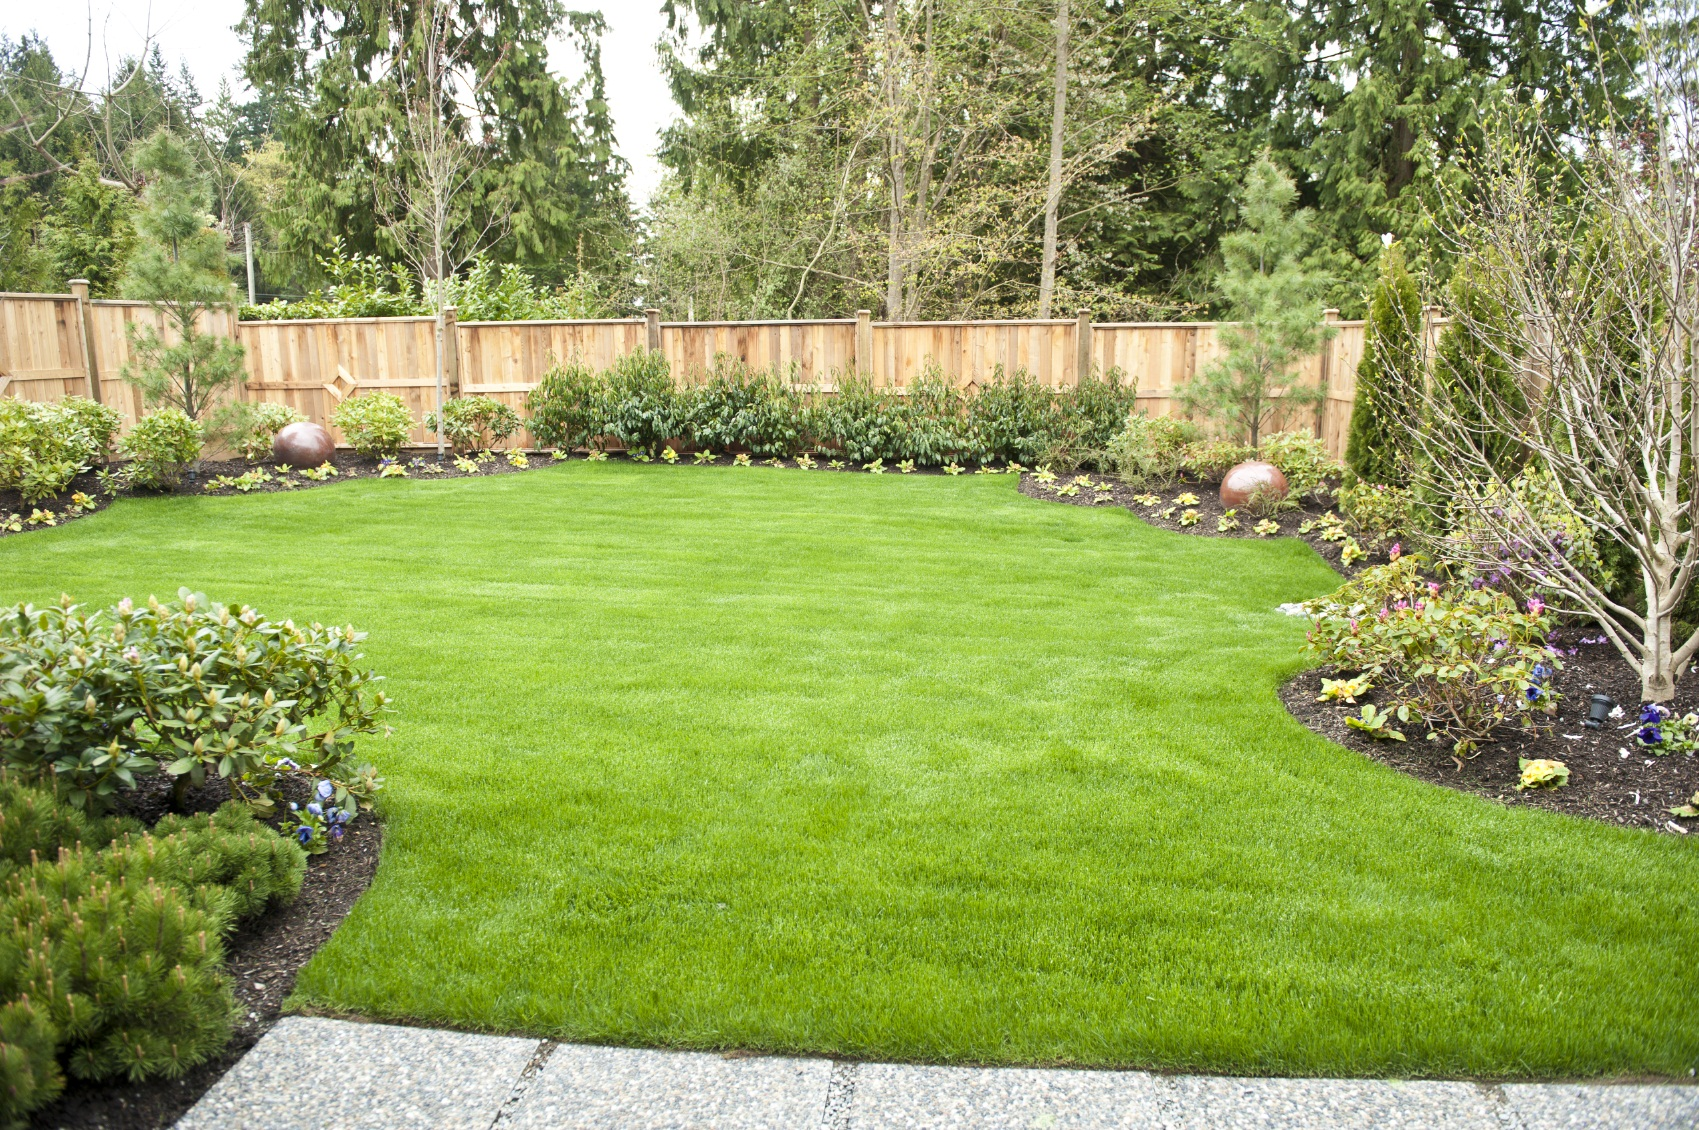 Landscaping Yard Photos : Backyard landscaping tips metamorphosis landscape design